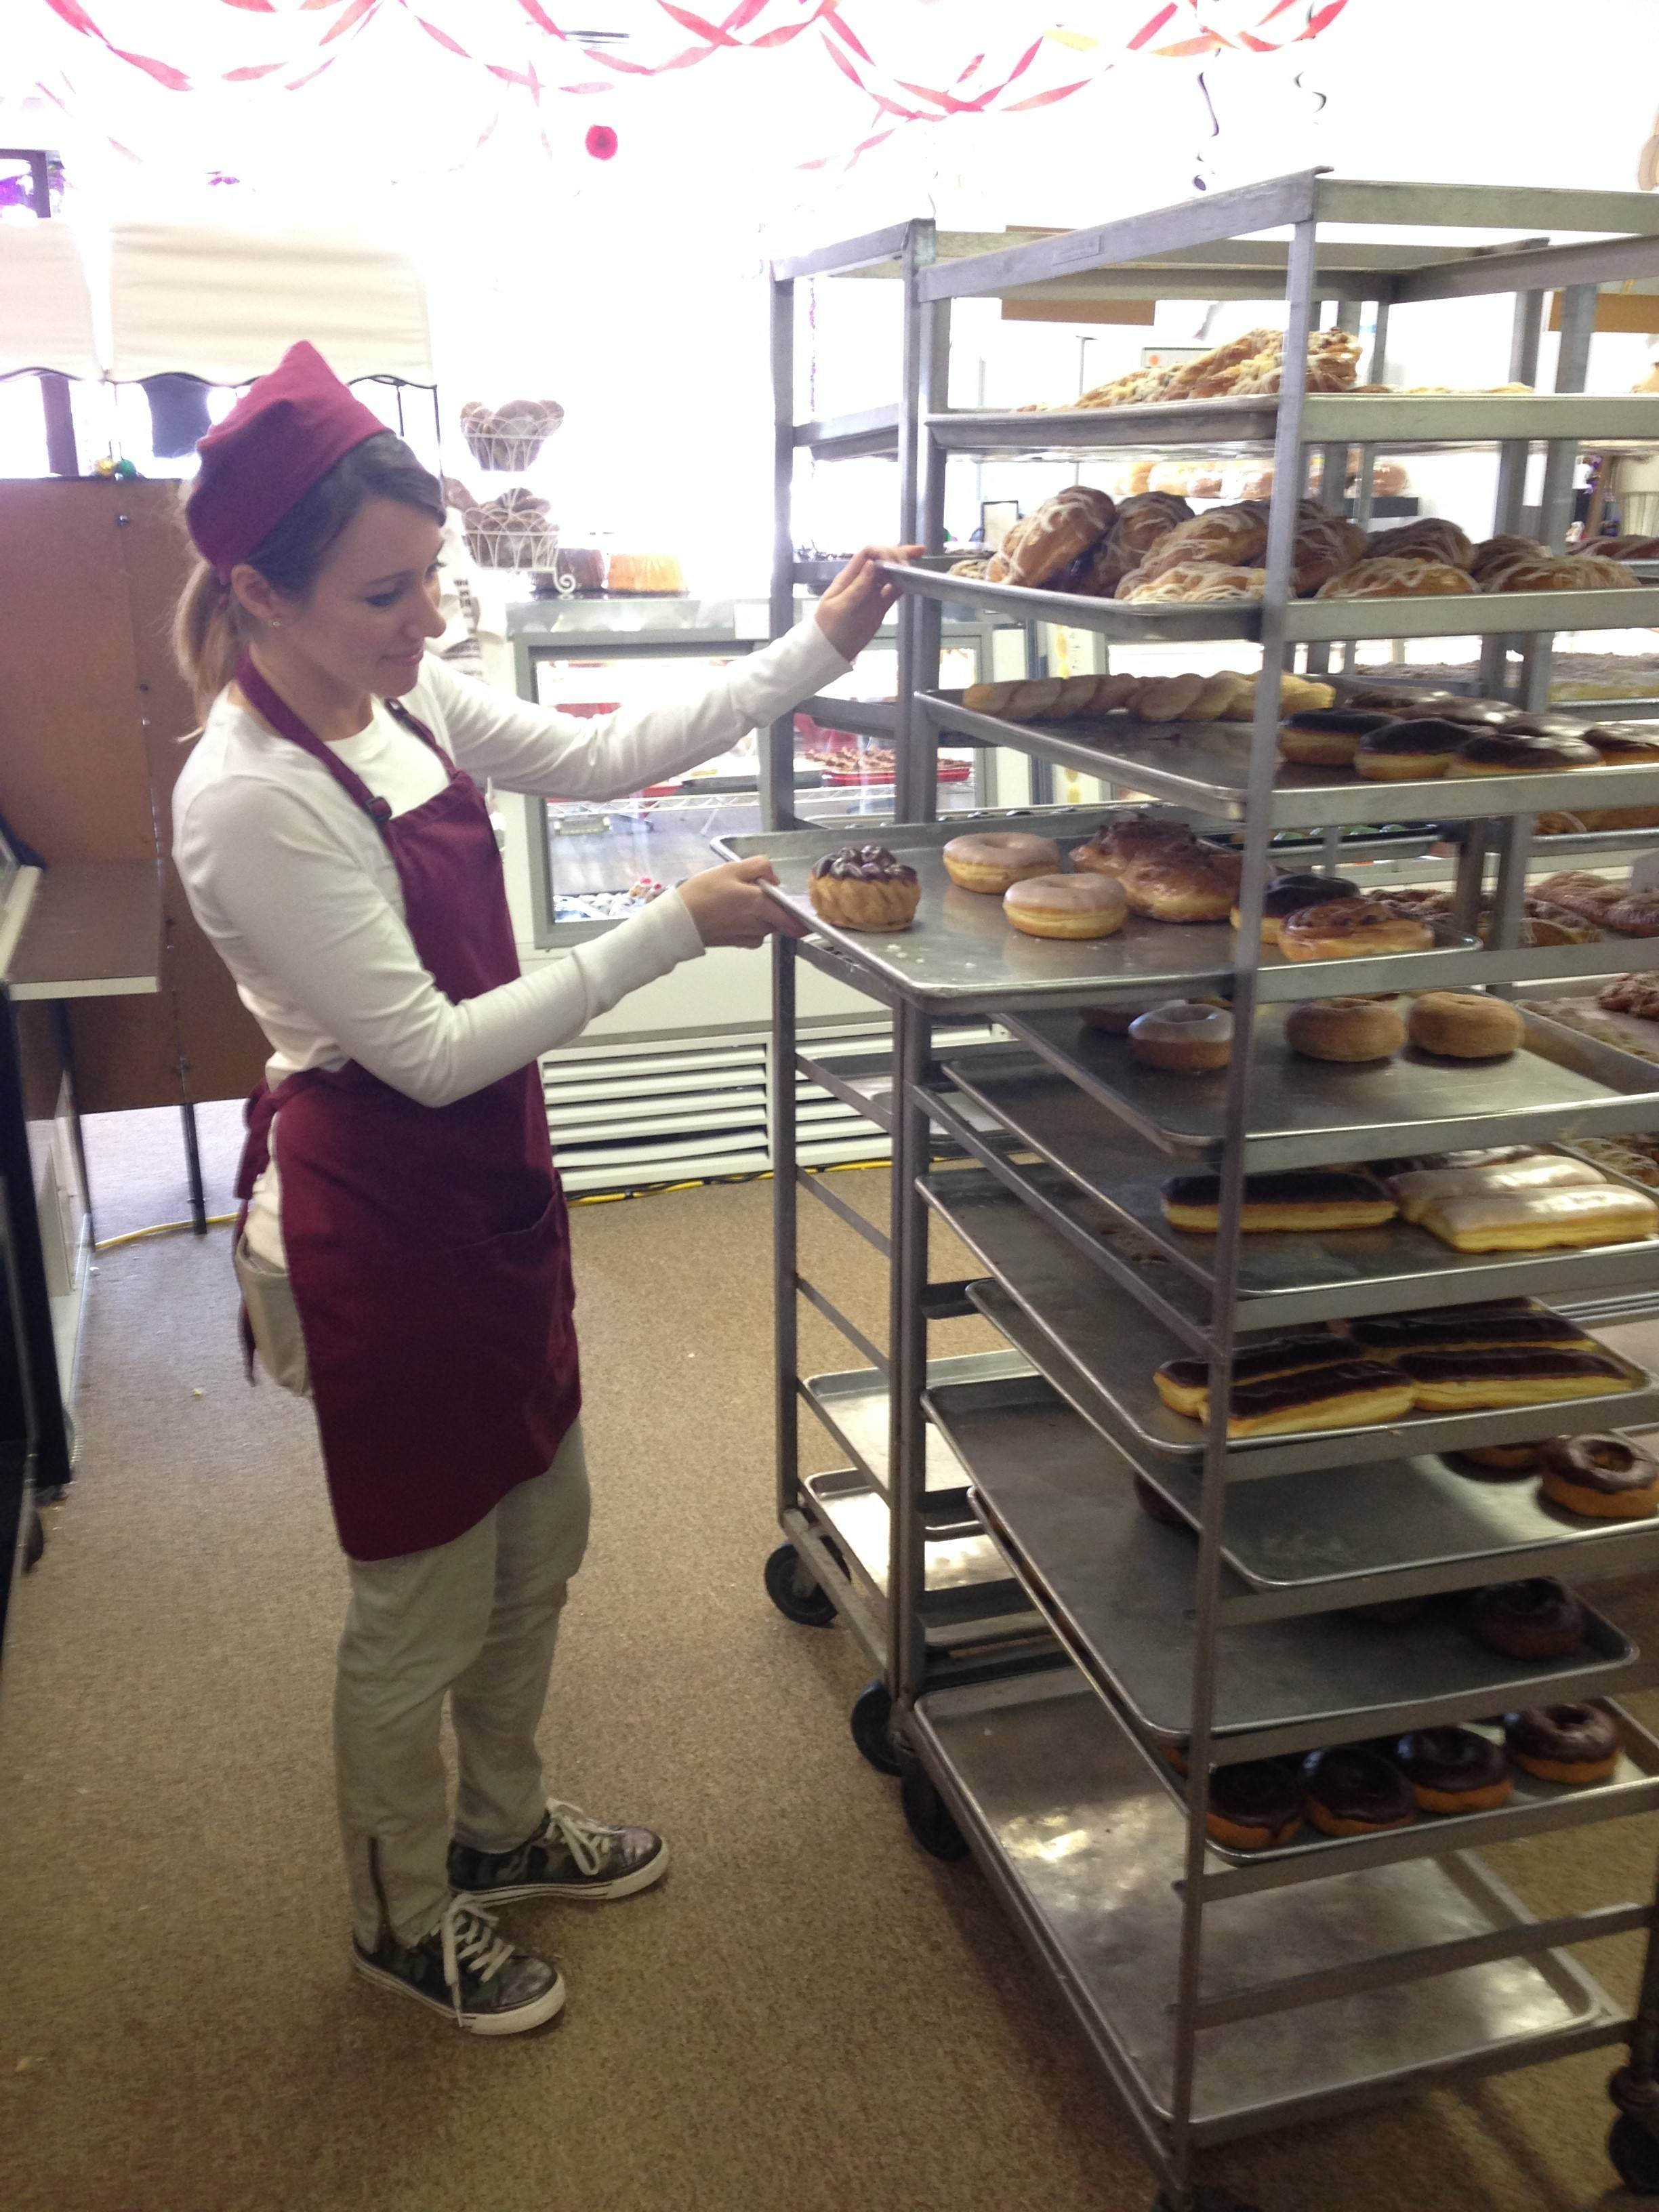 Katie Collins checks a tray of doughnuts Wednesday inside Central Continental Bakery's temporary location at 17 W. Prospect Ave. in downtown Mount Prospect. The bakery was displaced from its longtime location on Main Street in Mount Prospect by a Feb. 9 fire.